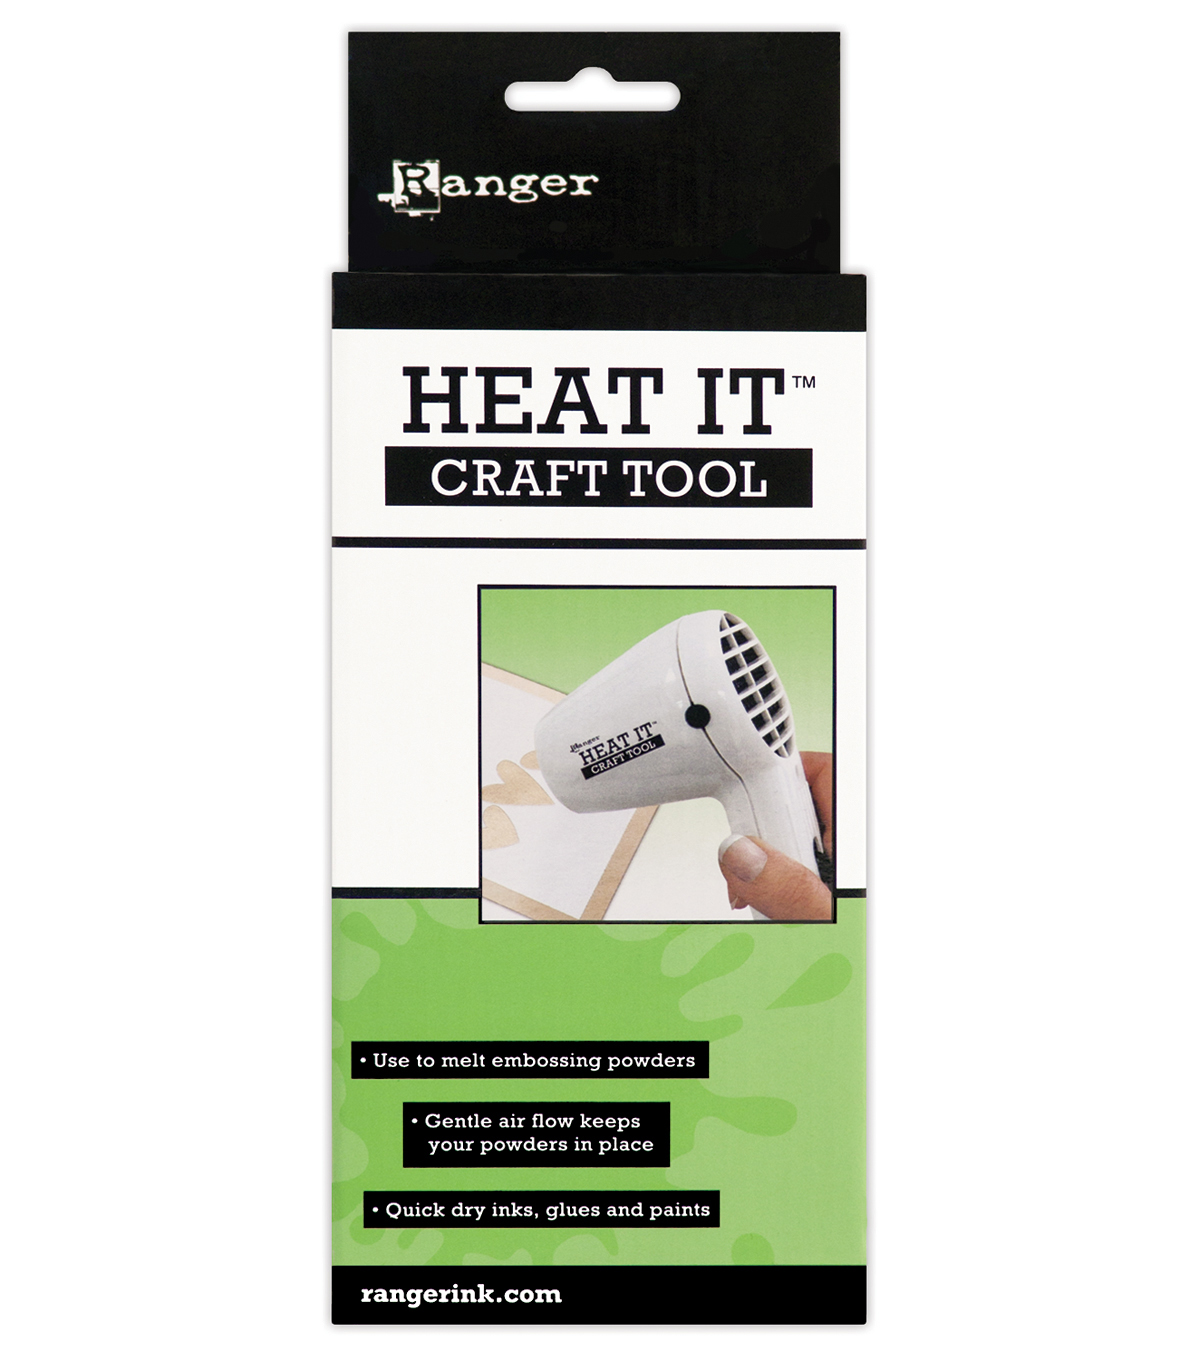 Heat It Craft Tool - United Kingdom Version-220v To 240v